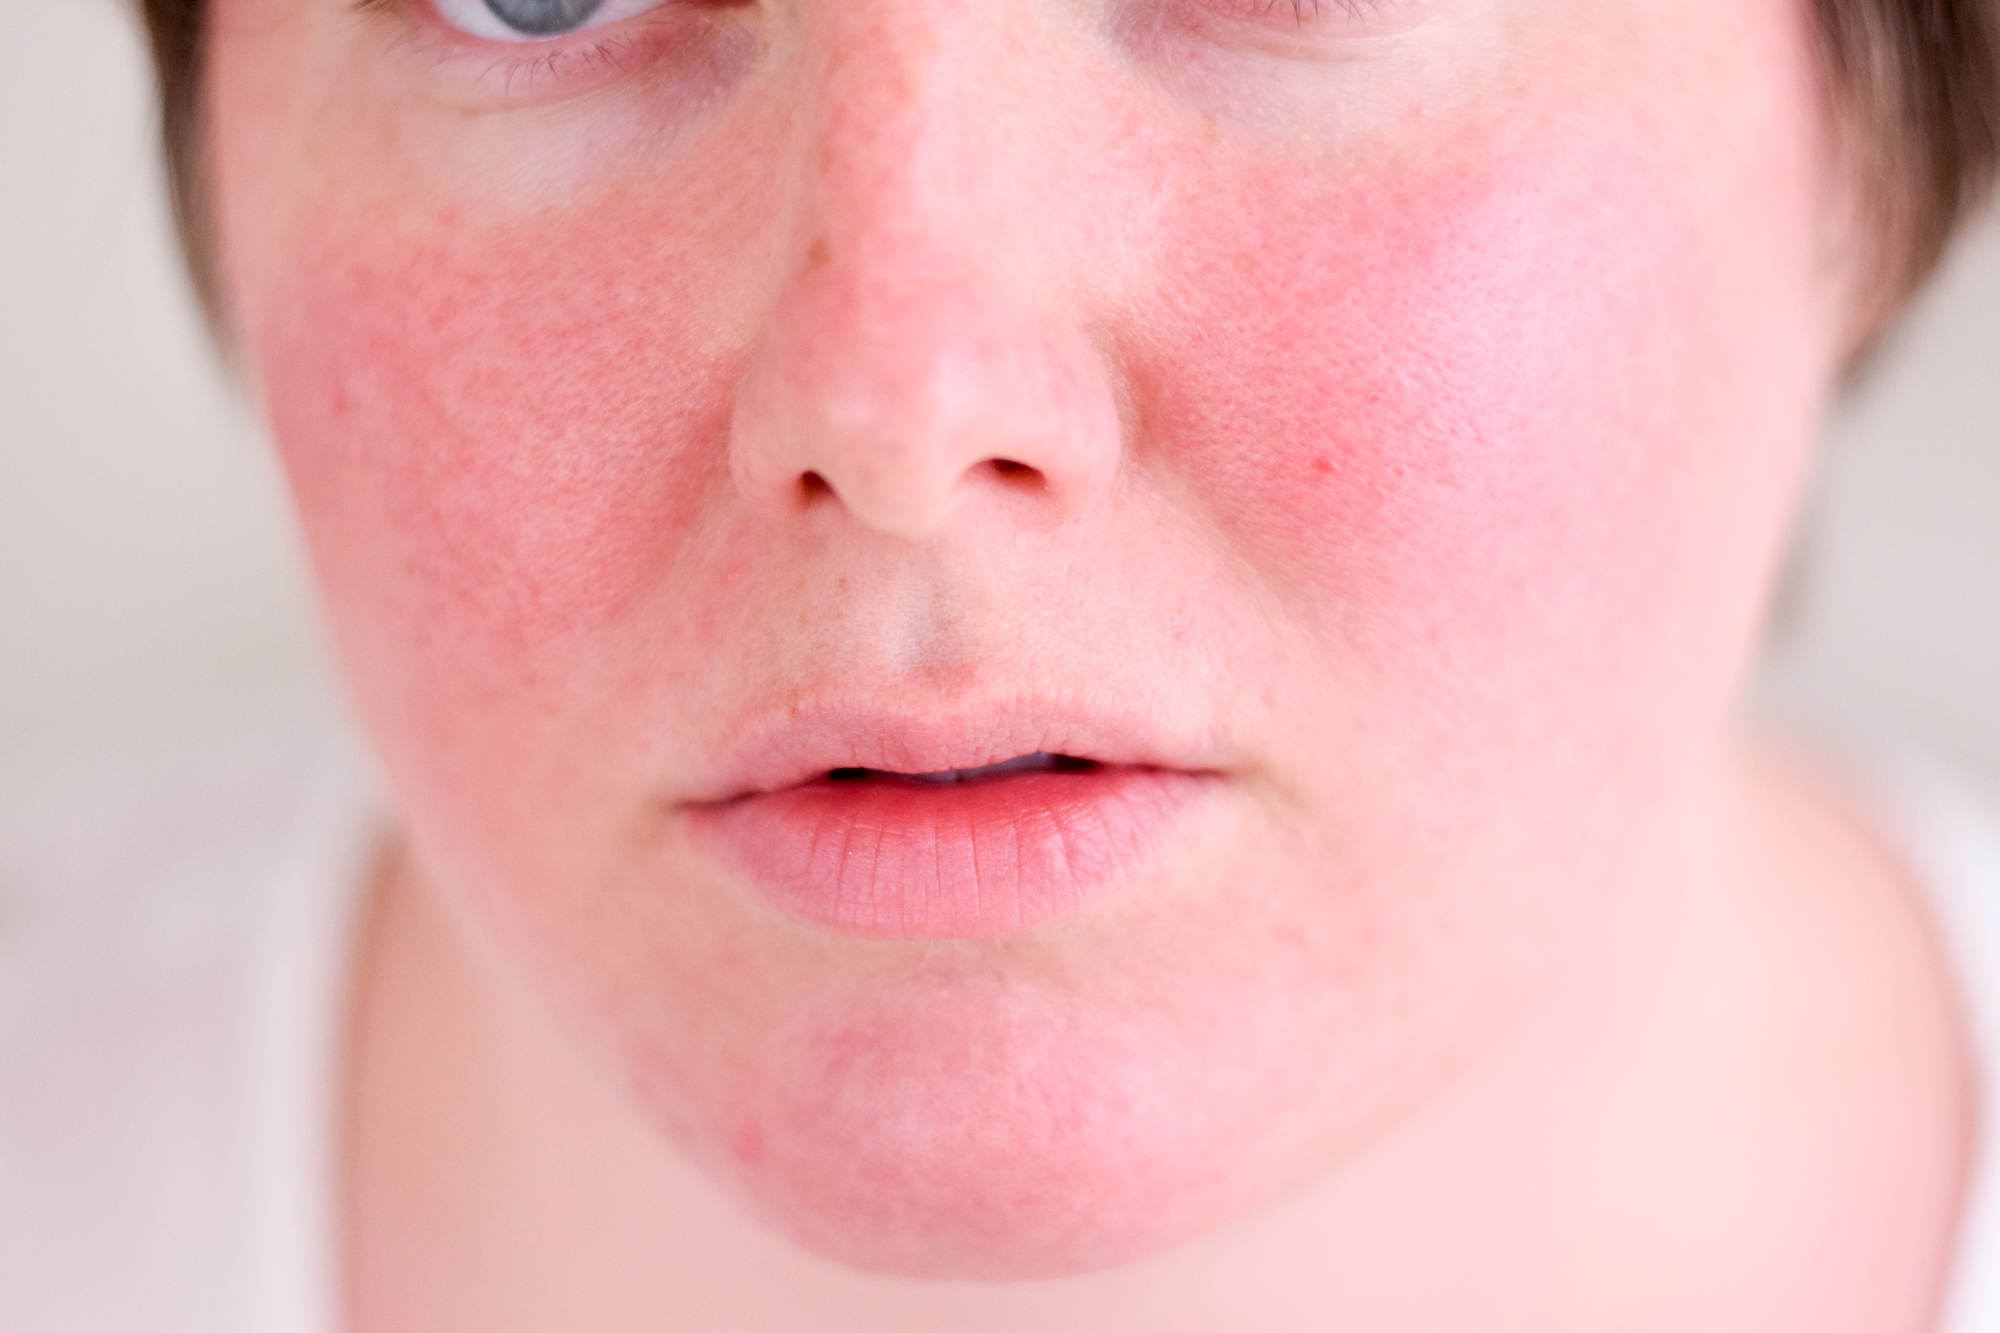 red skin on face how to get rid of it